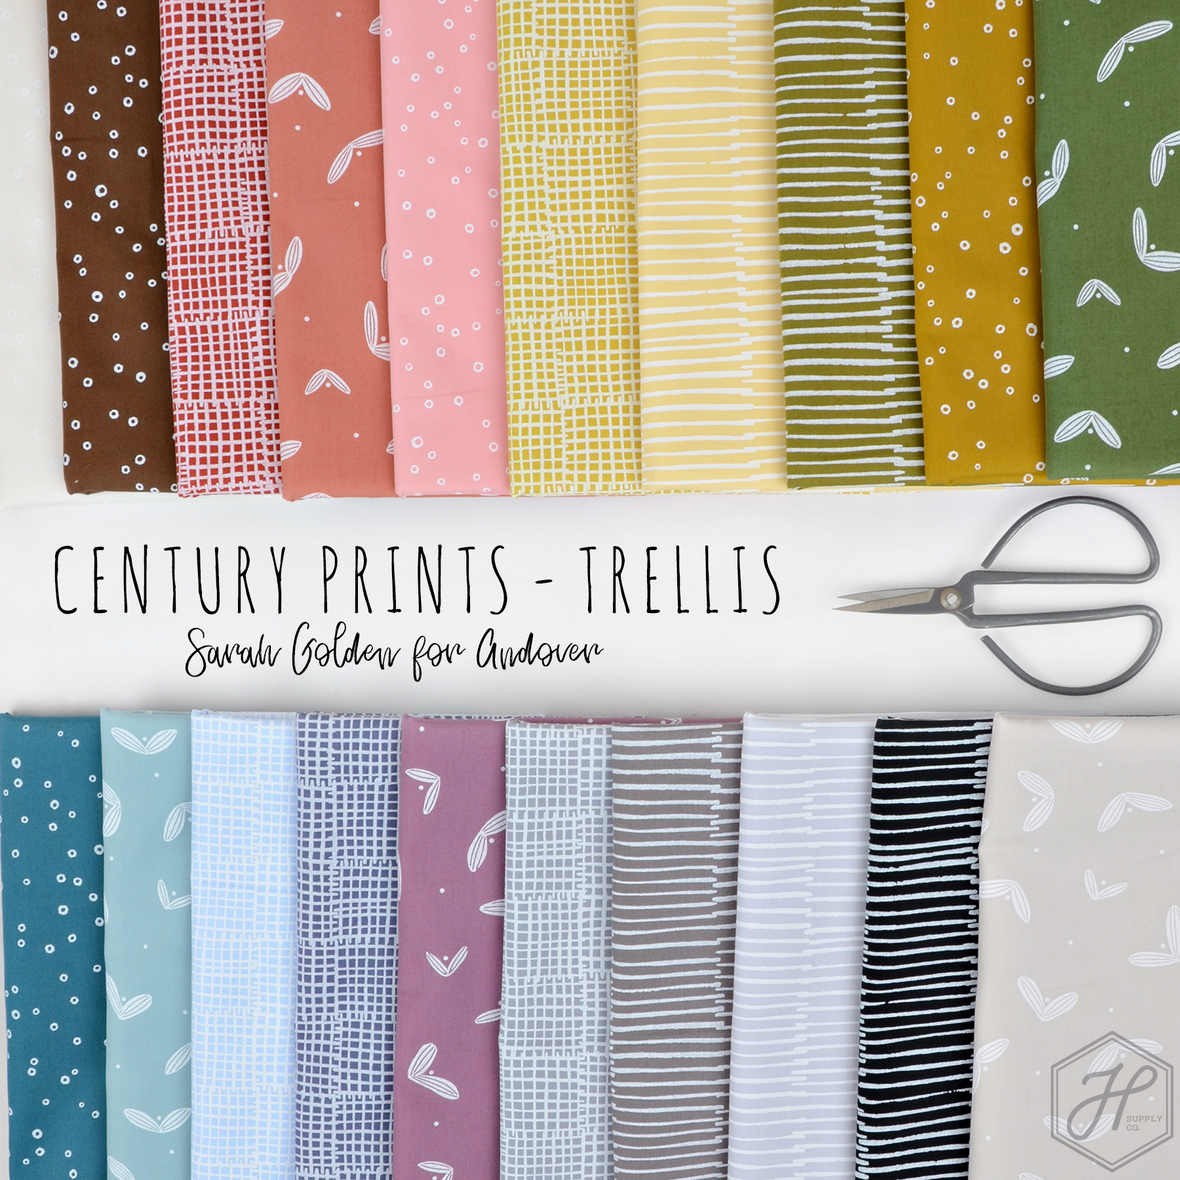 Century Prints Trellis fabric Sarah Golden for Andover at Hawthorne Supply Co.